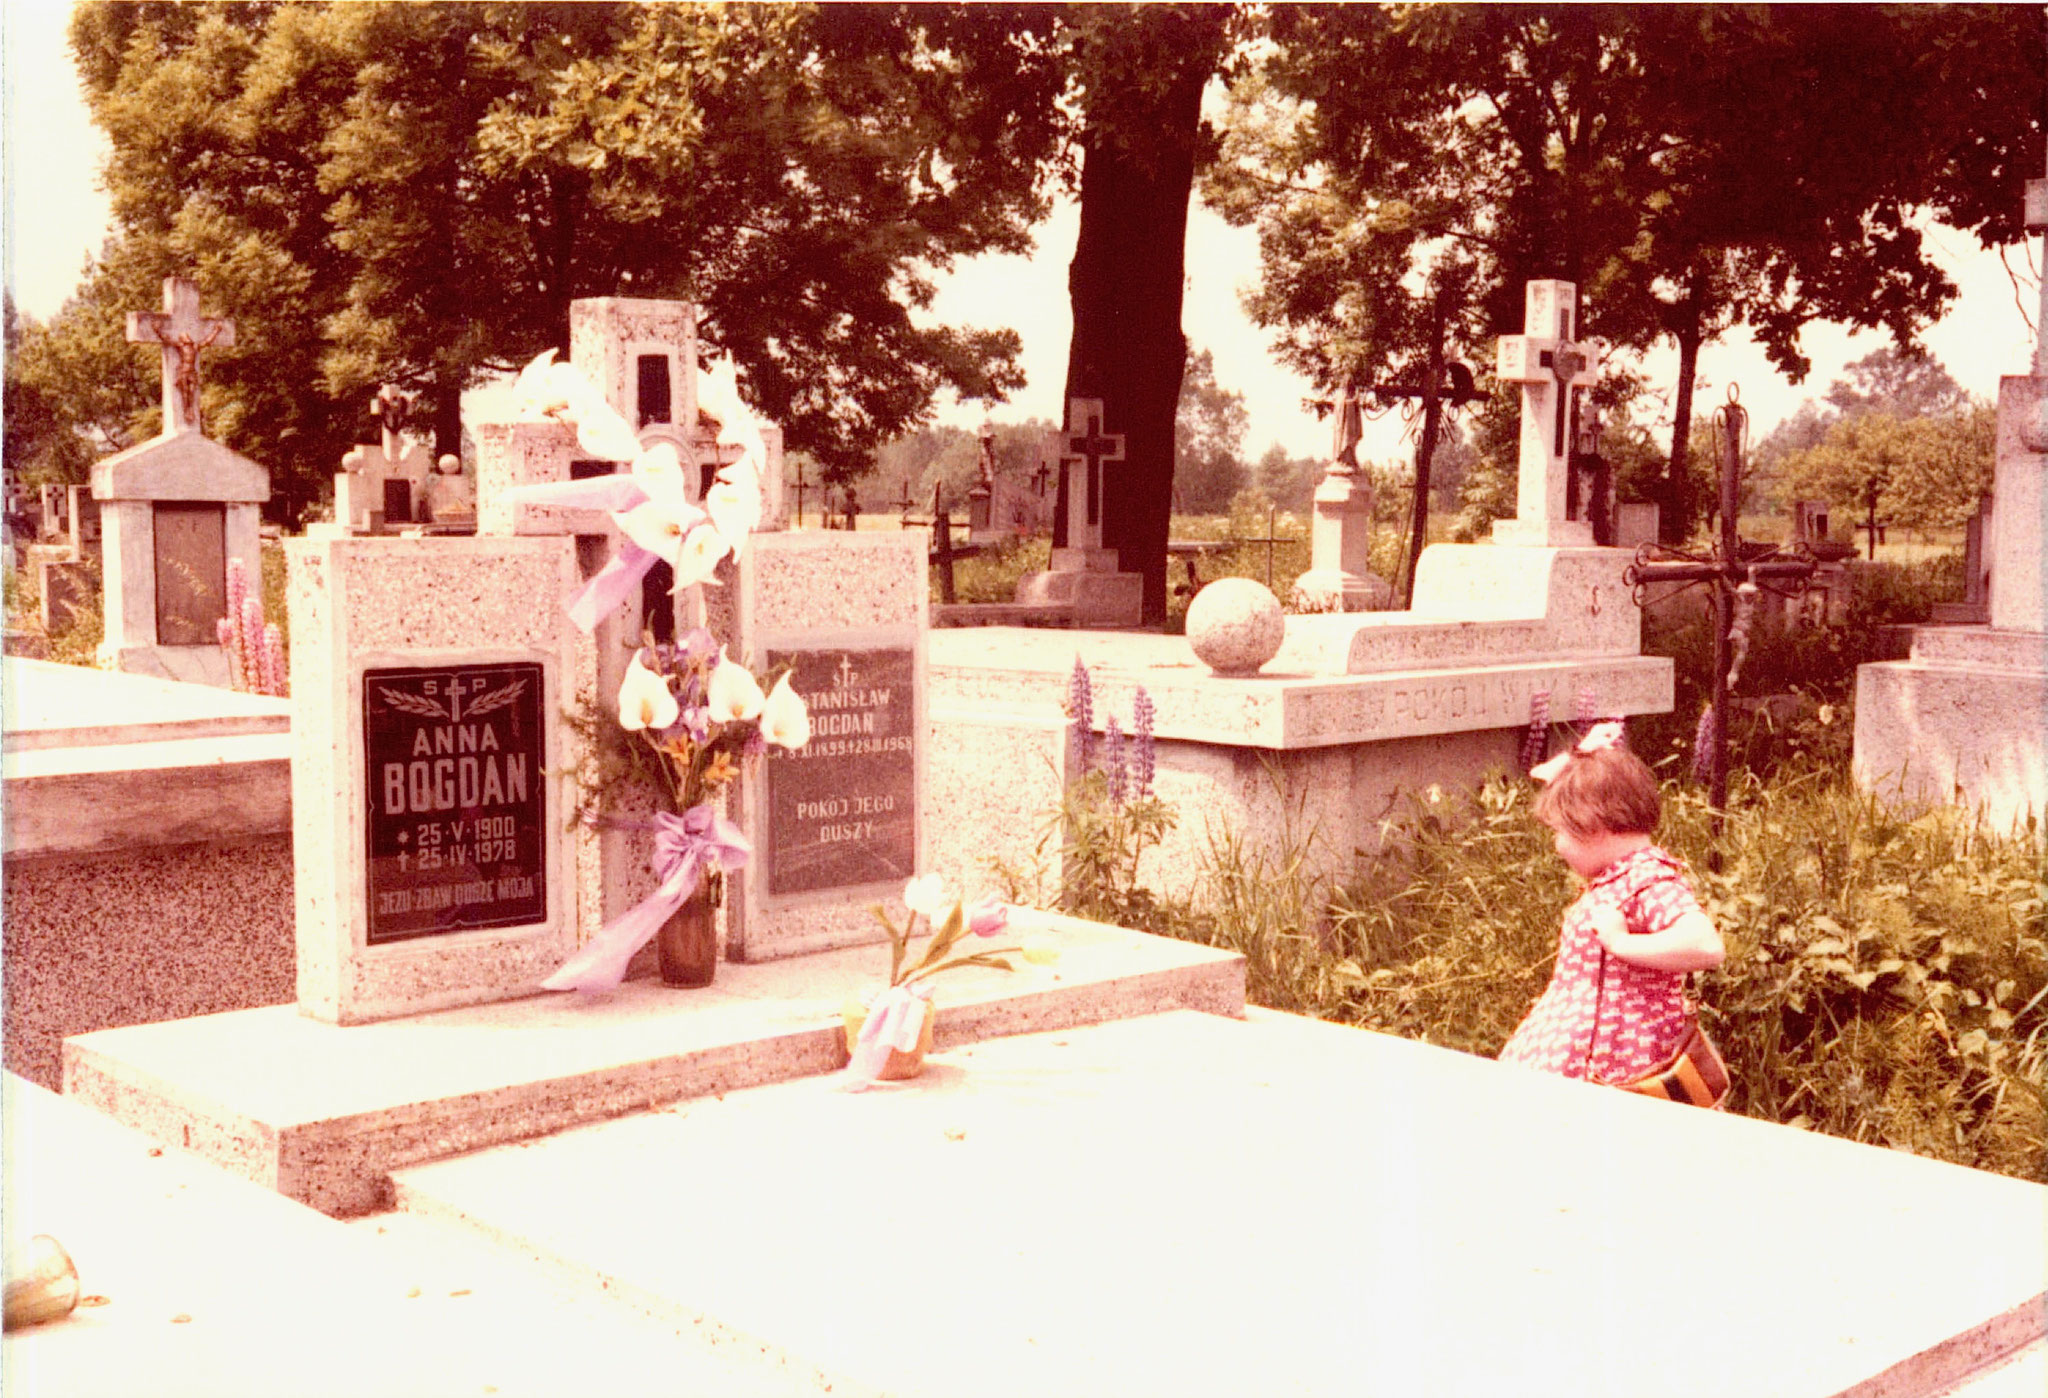 Stanislaw & Anna Bogdanowic' grave 1978; Stanislaw (Stanley) was a brother of Paul Bogden (also Bogdan). Irena behind graves!